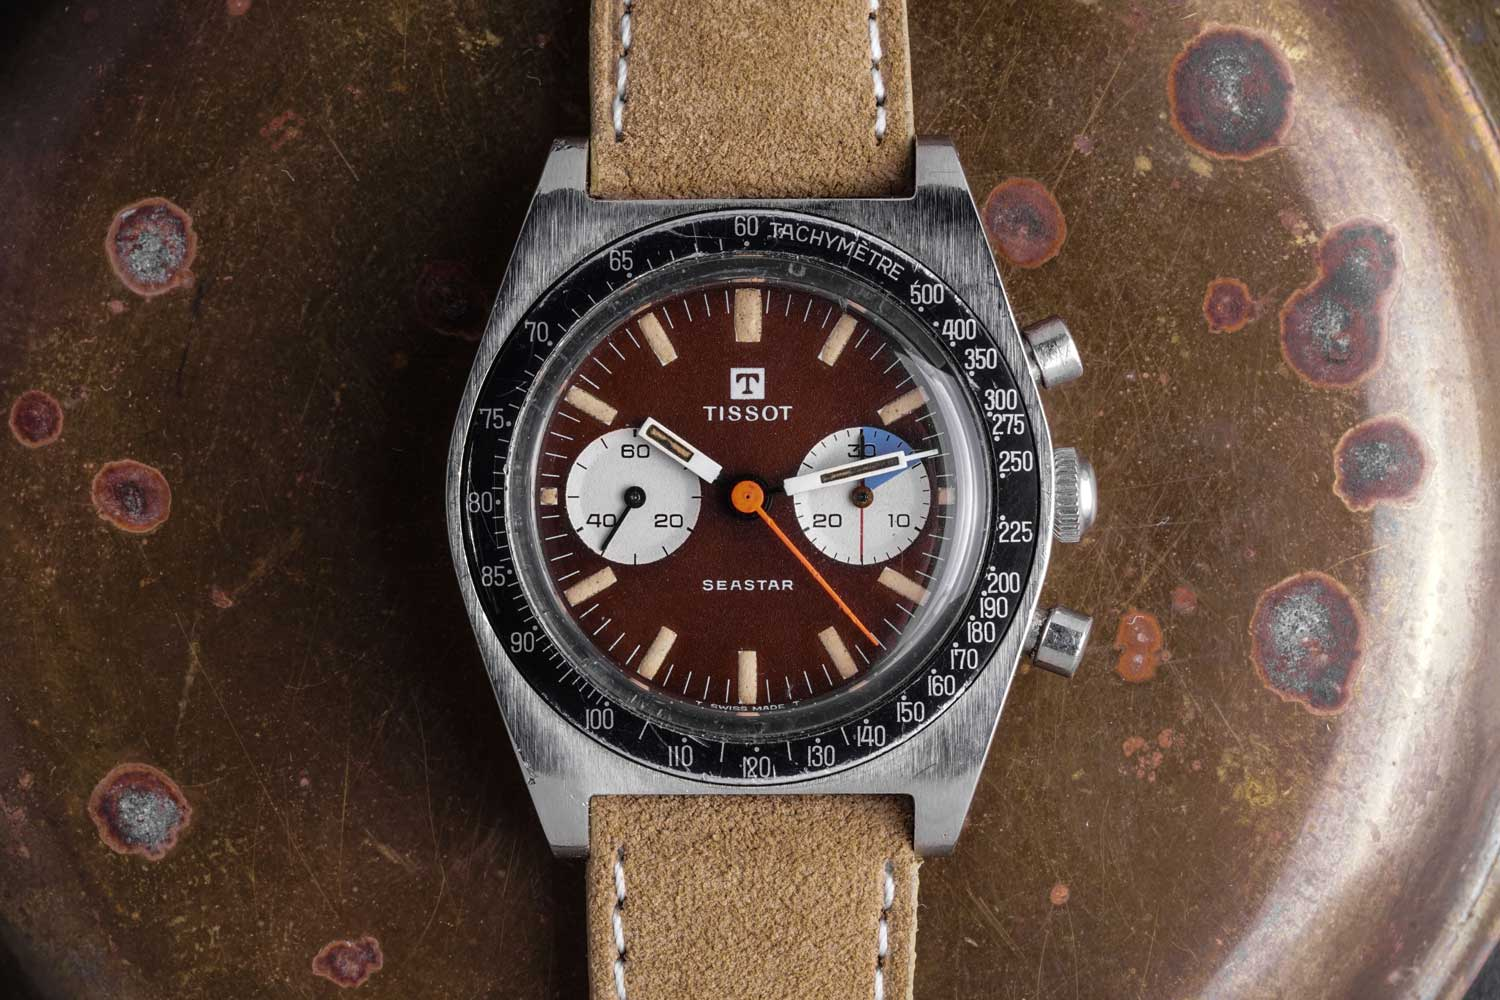 With its tropical oxblood dial and chunky handset, this reliable Lemania manual wind Tissot Seastar Chronograph is simply irresistible (Image: CraftandTailored.com)